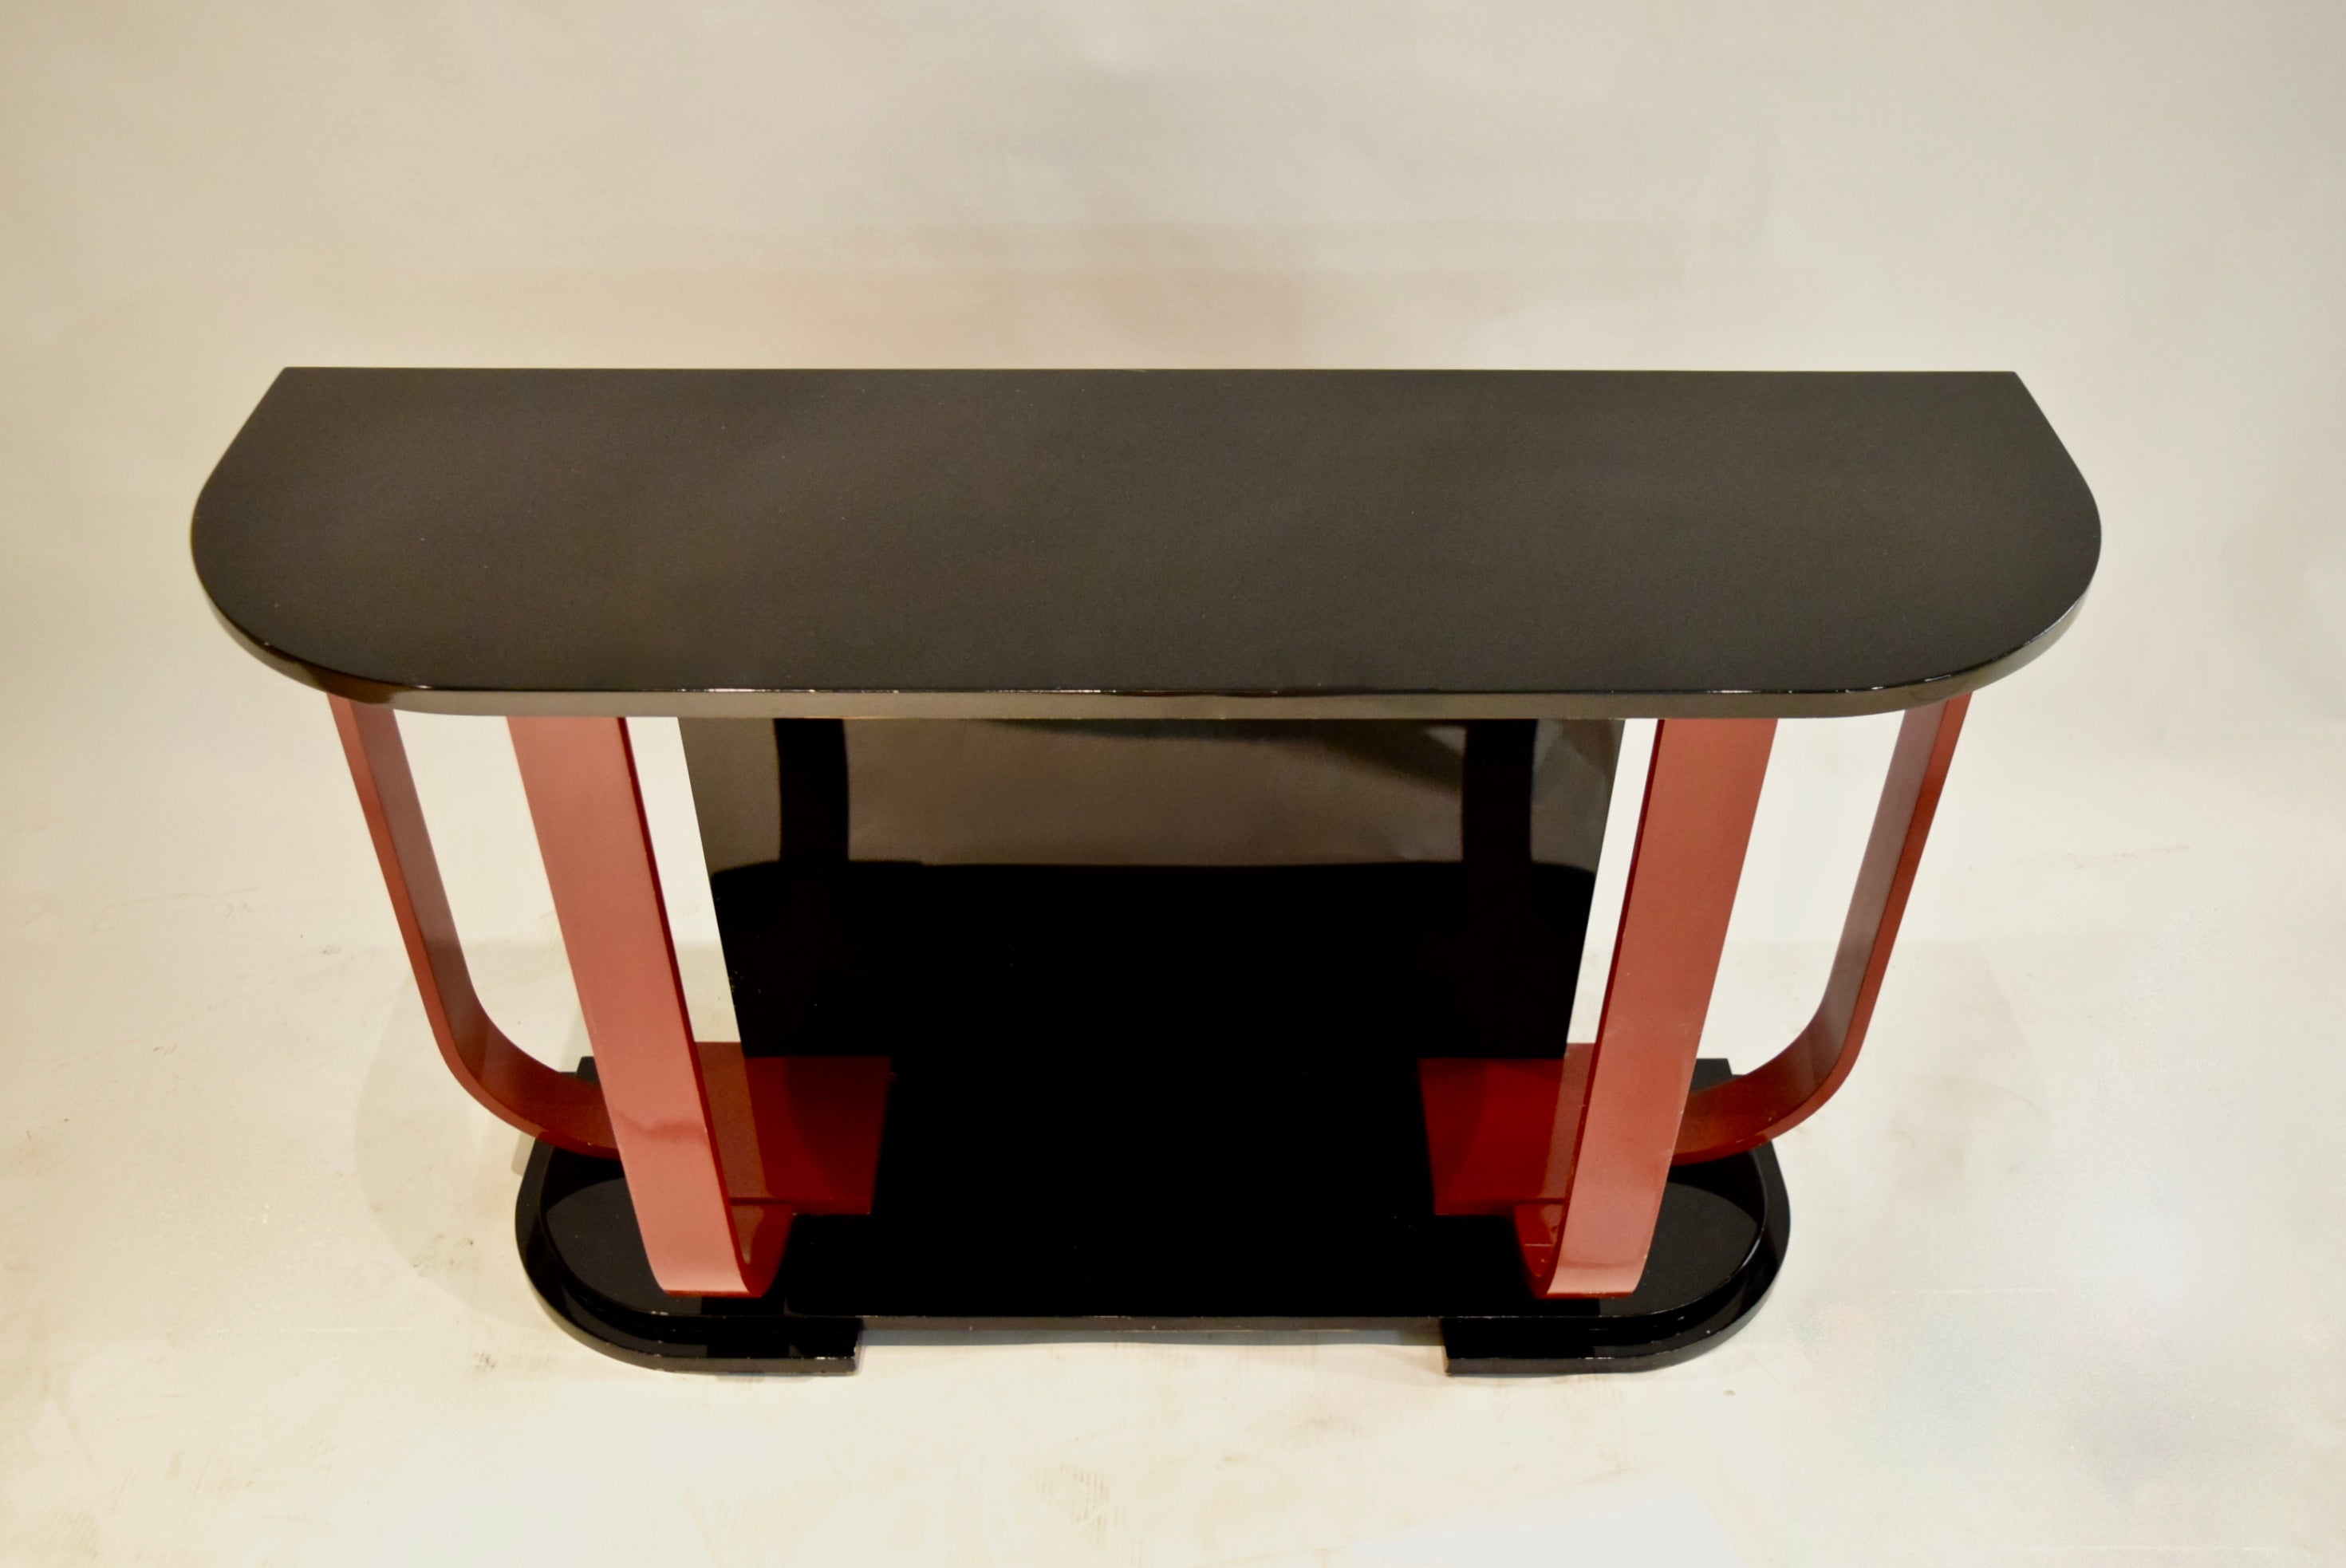 Roche Bobois Console Black And Red Lacquered Console By Roche Bobois Circa 1975 Made In France